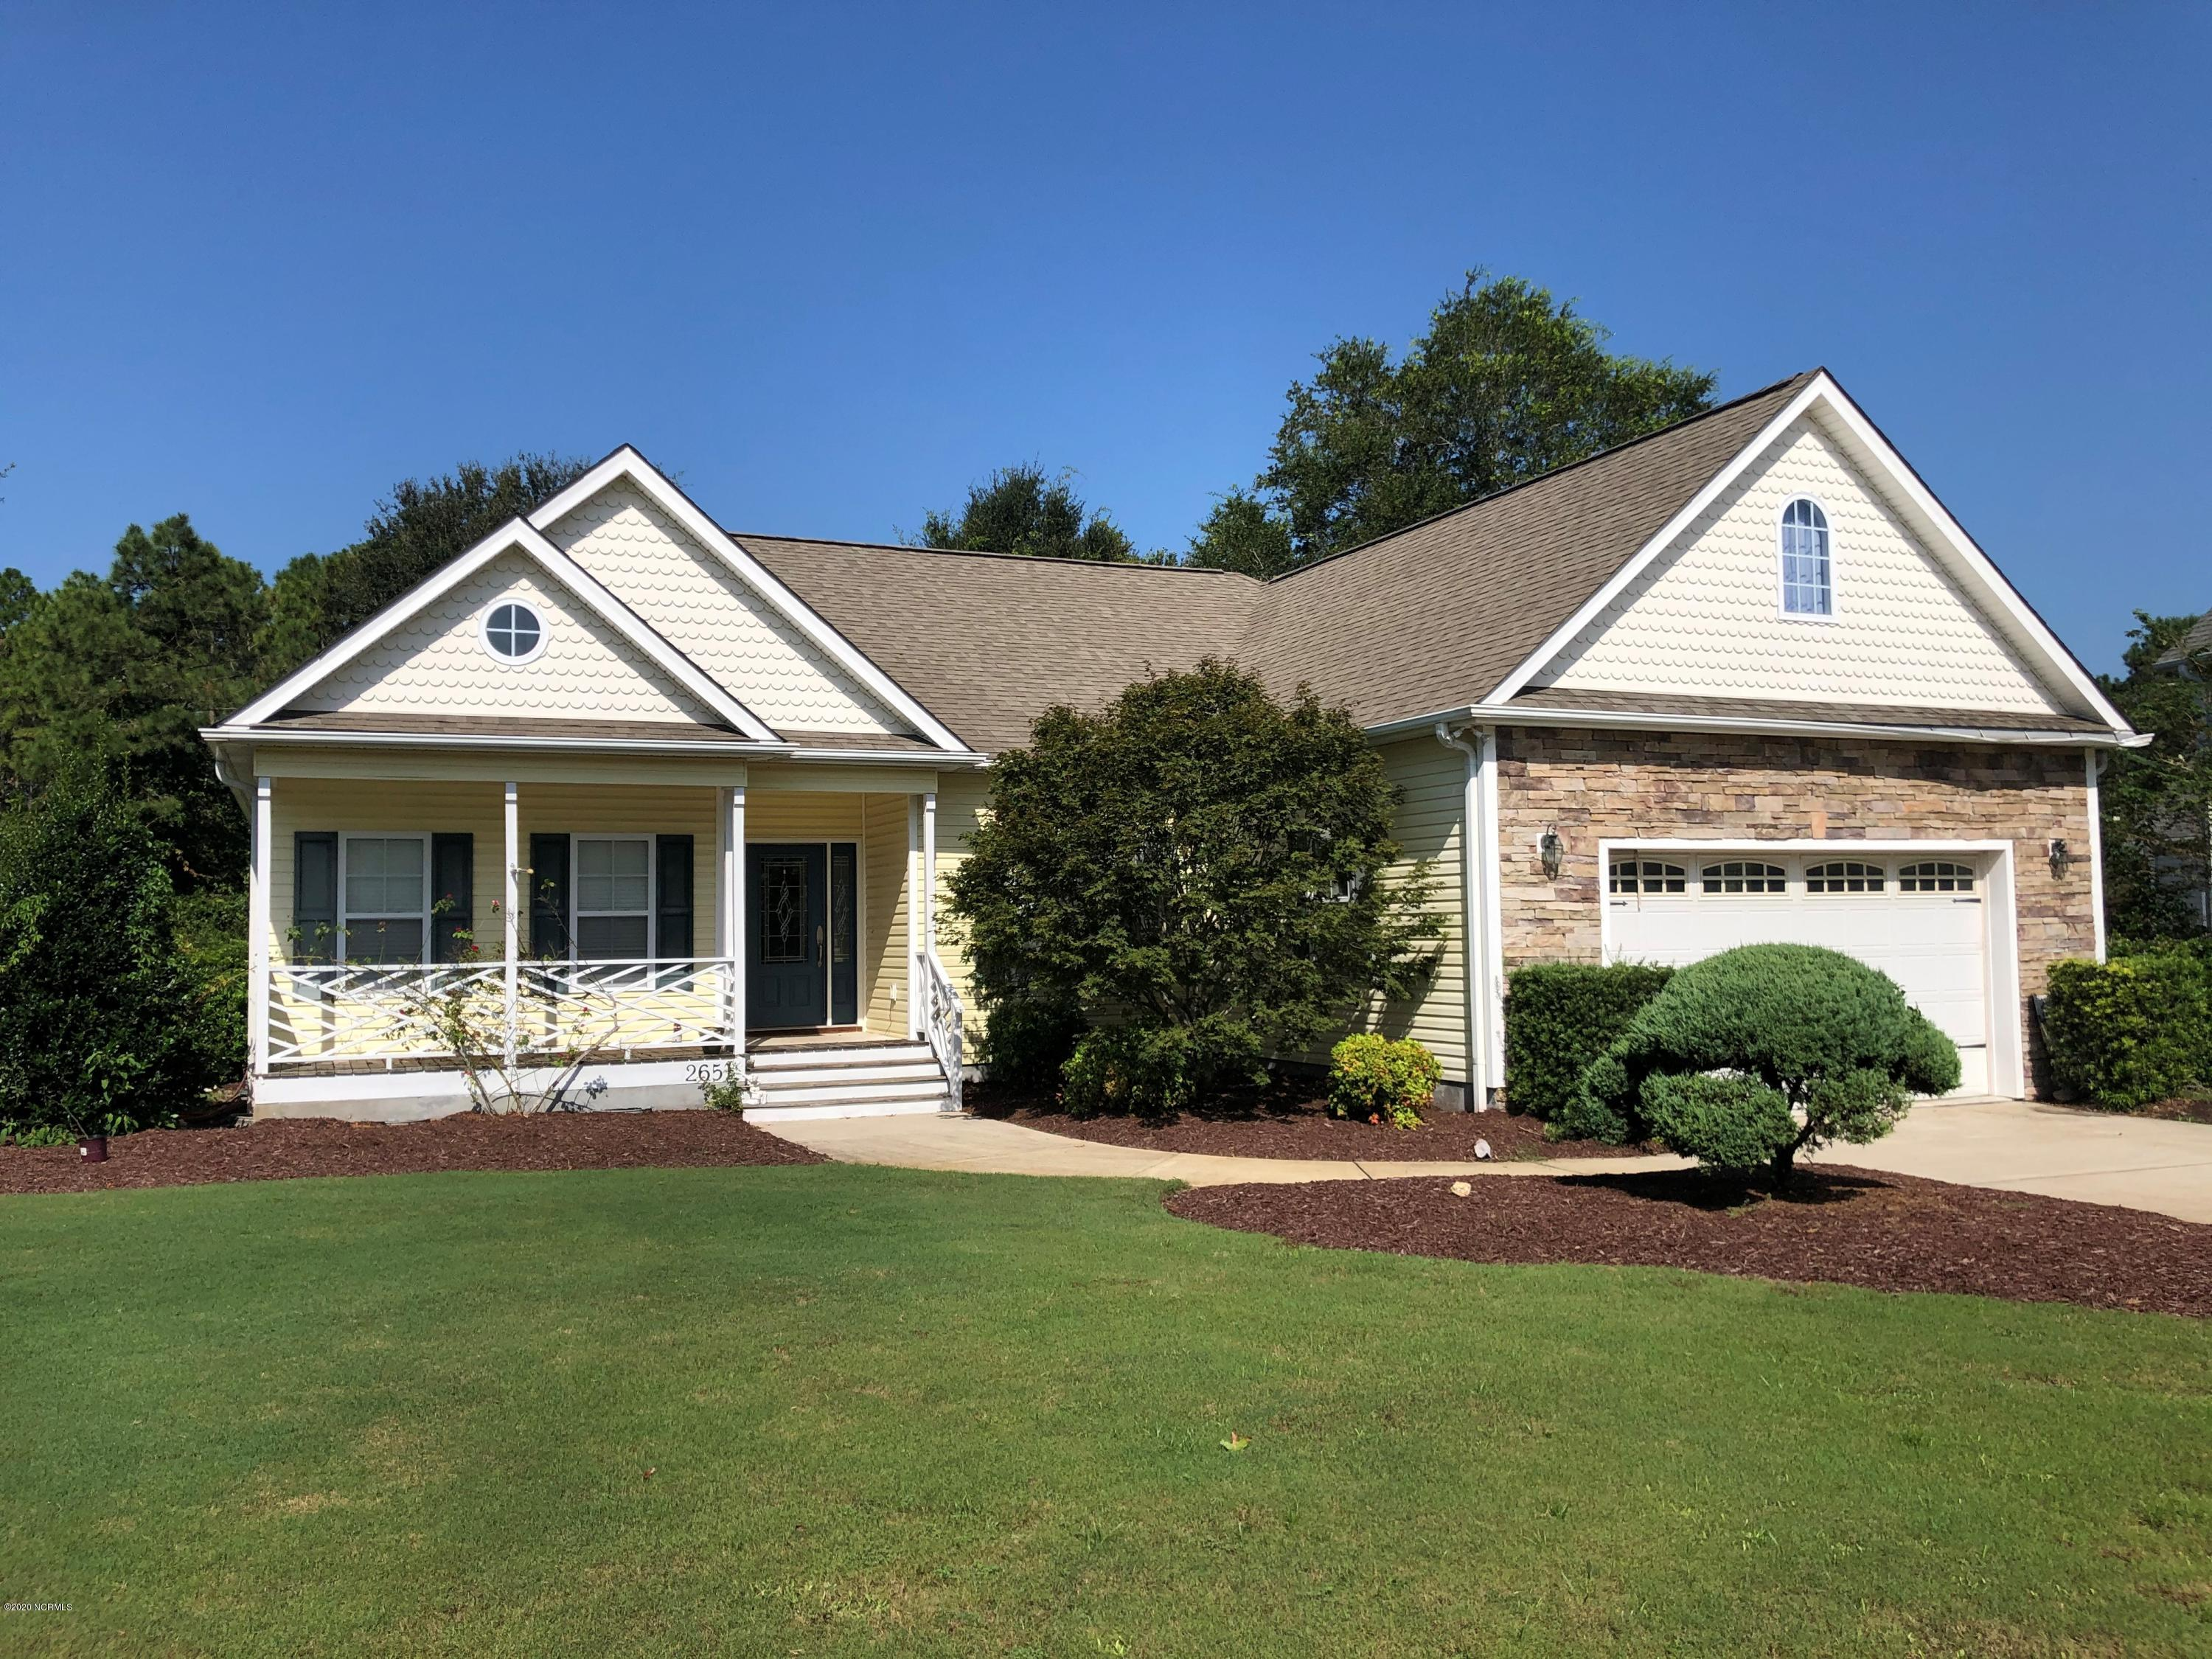 2651 Jessica Lane, Supply, North Carolina 28462, 3 Bedrooms Bedrooms, ,2 BathroomsBathrooms,Residential,For Sale,Jessica,100235998